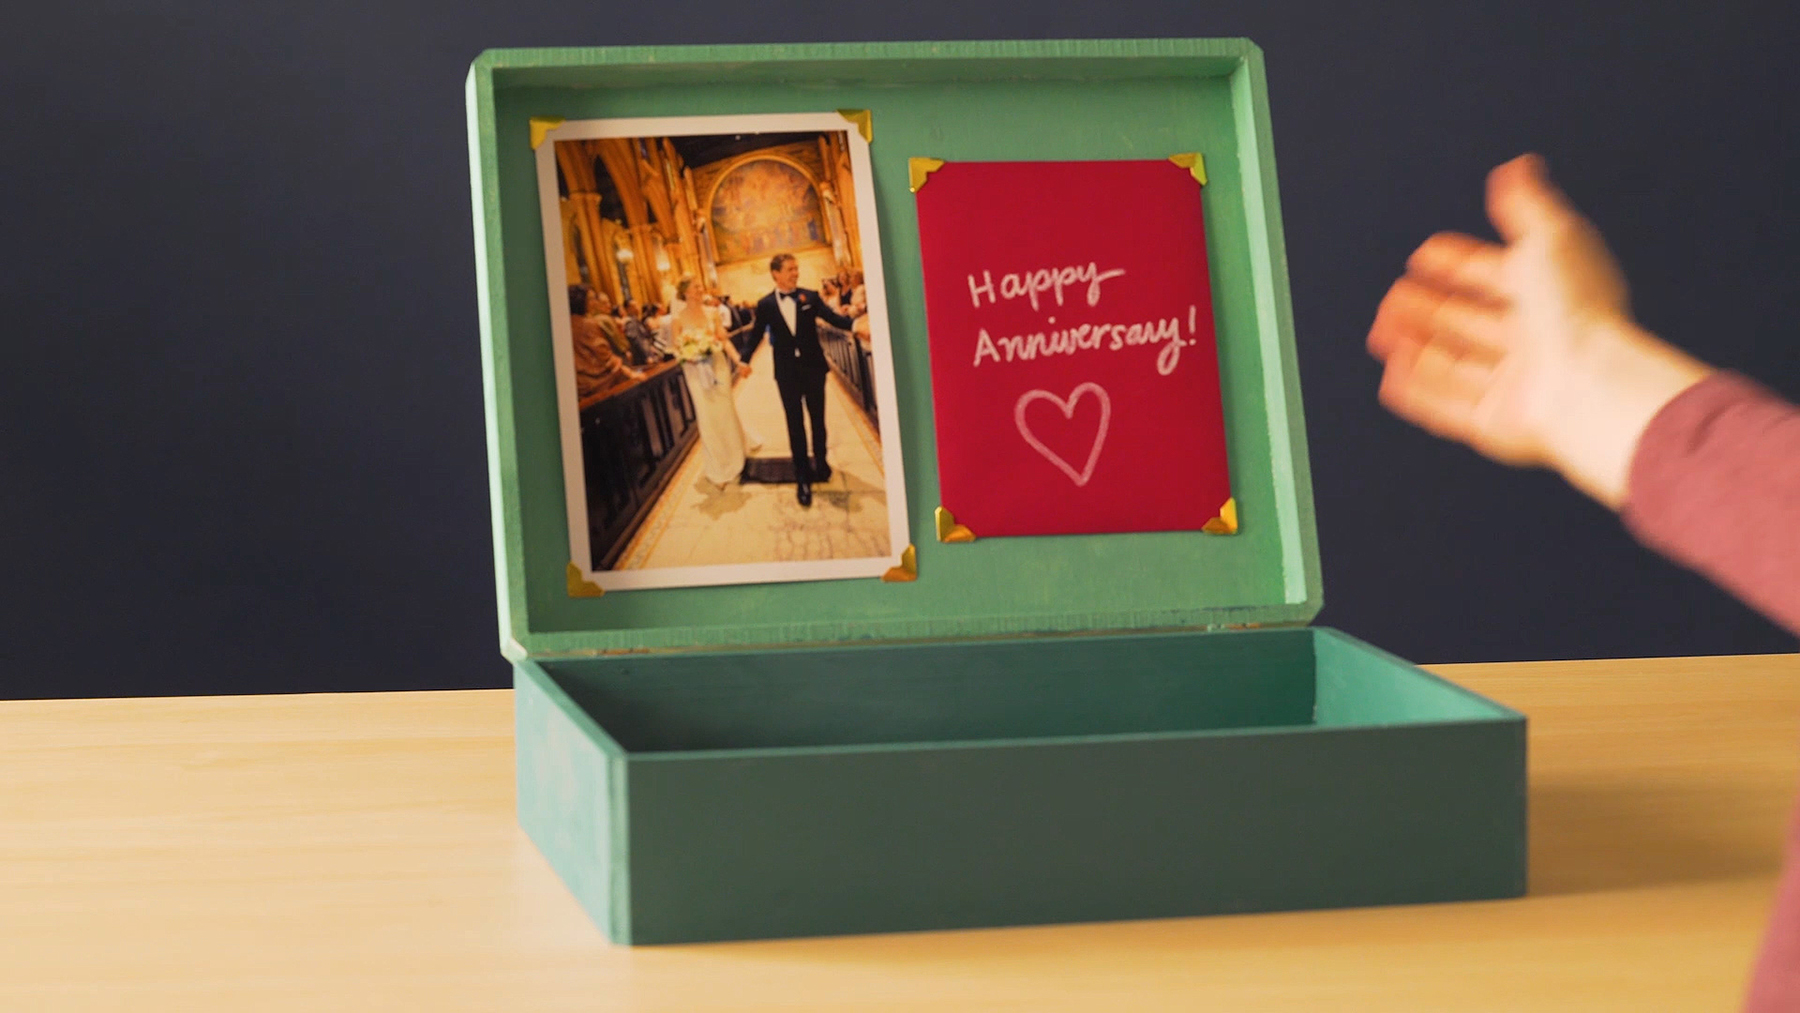 Meaningful Wedding Gift Ideas: Video: 3 Meaningful Gift Ideas For Birthdays Or